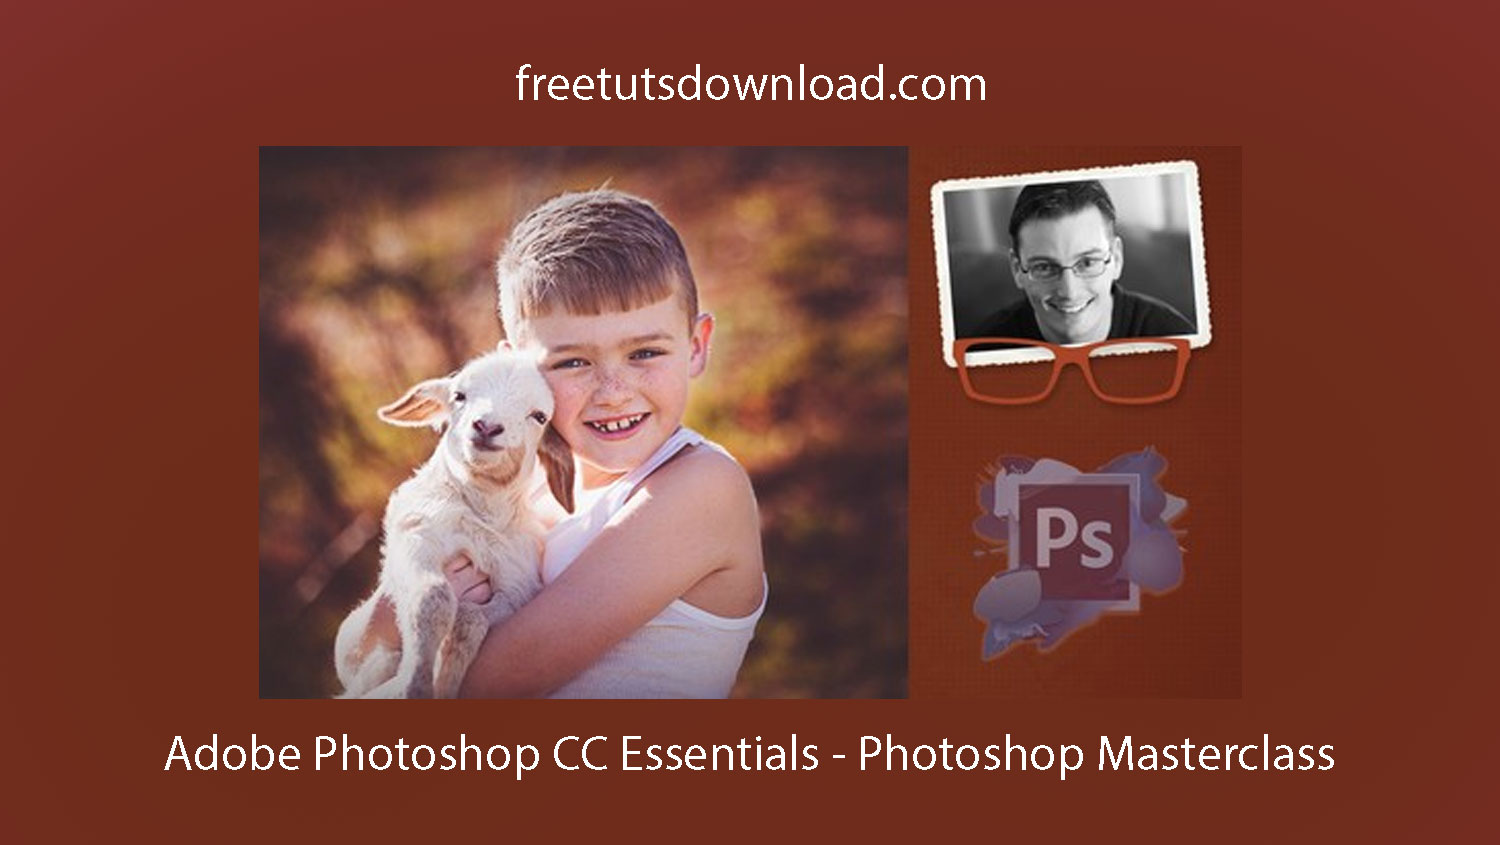 Adobe Photoshop CC Essentials - Photoshop Masterclass